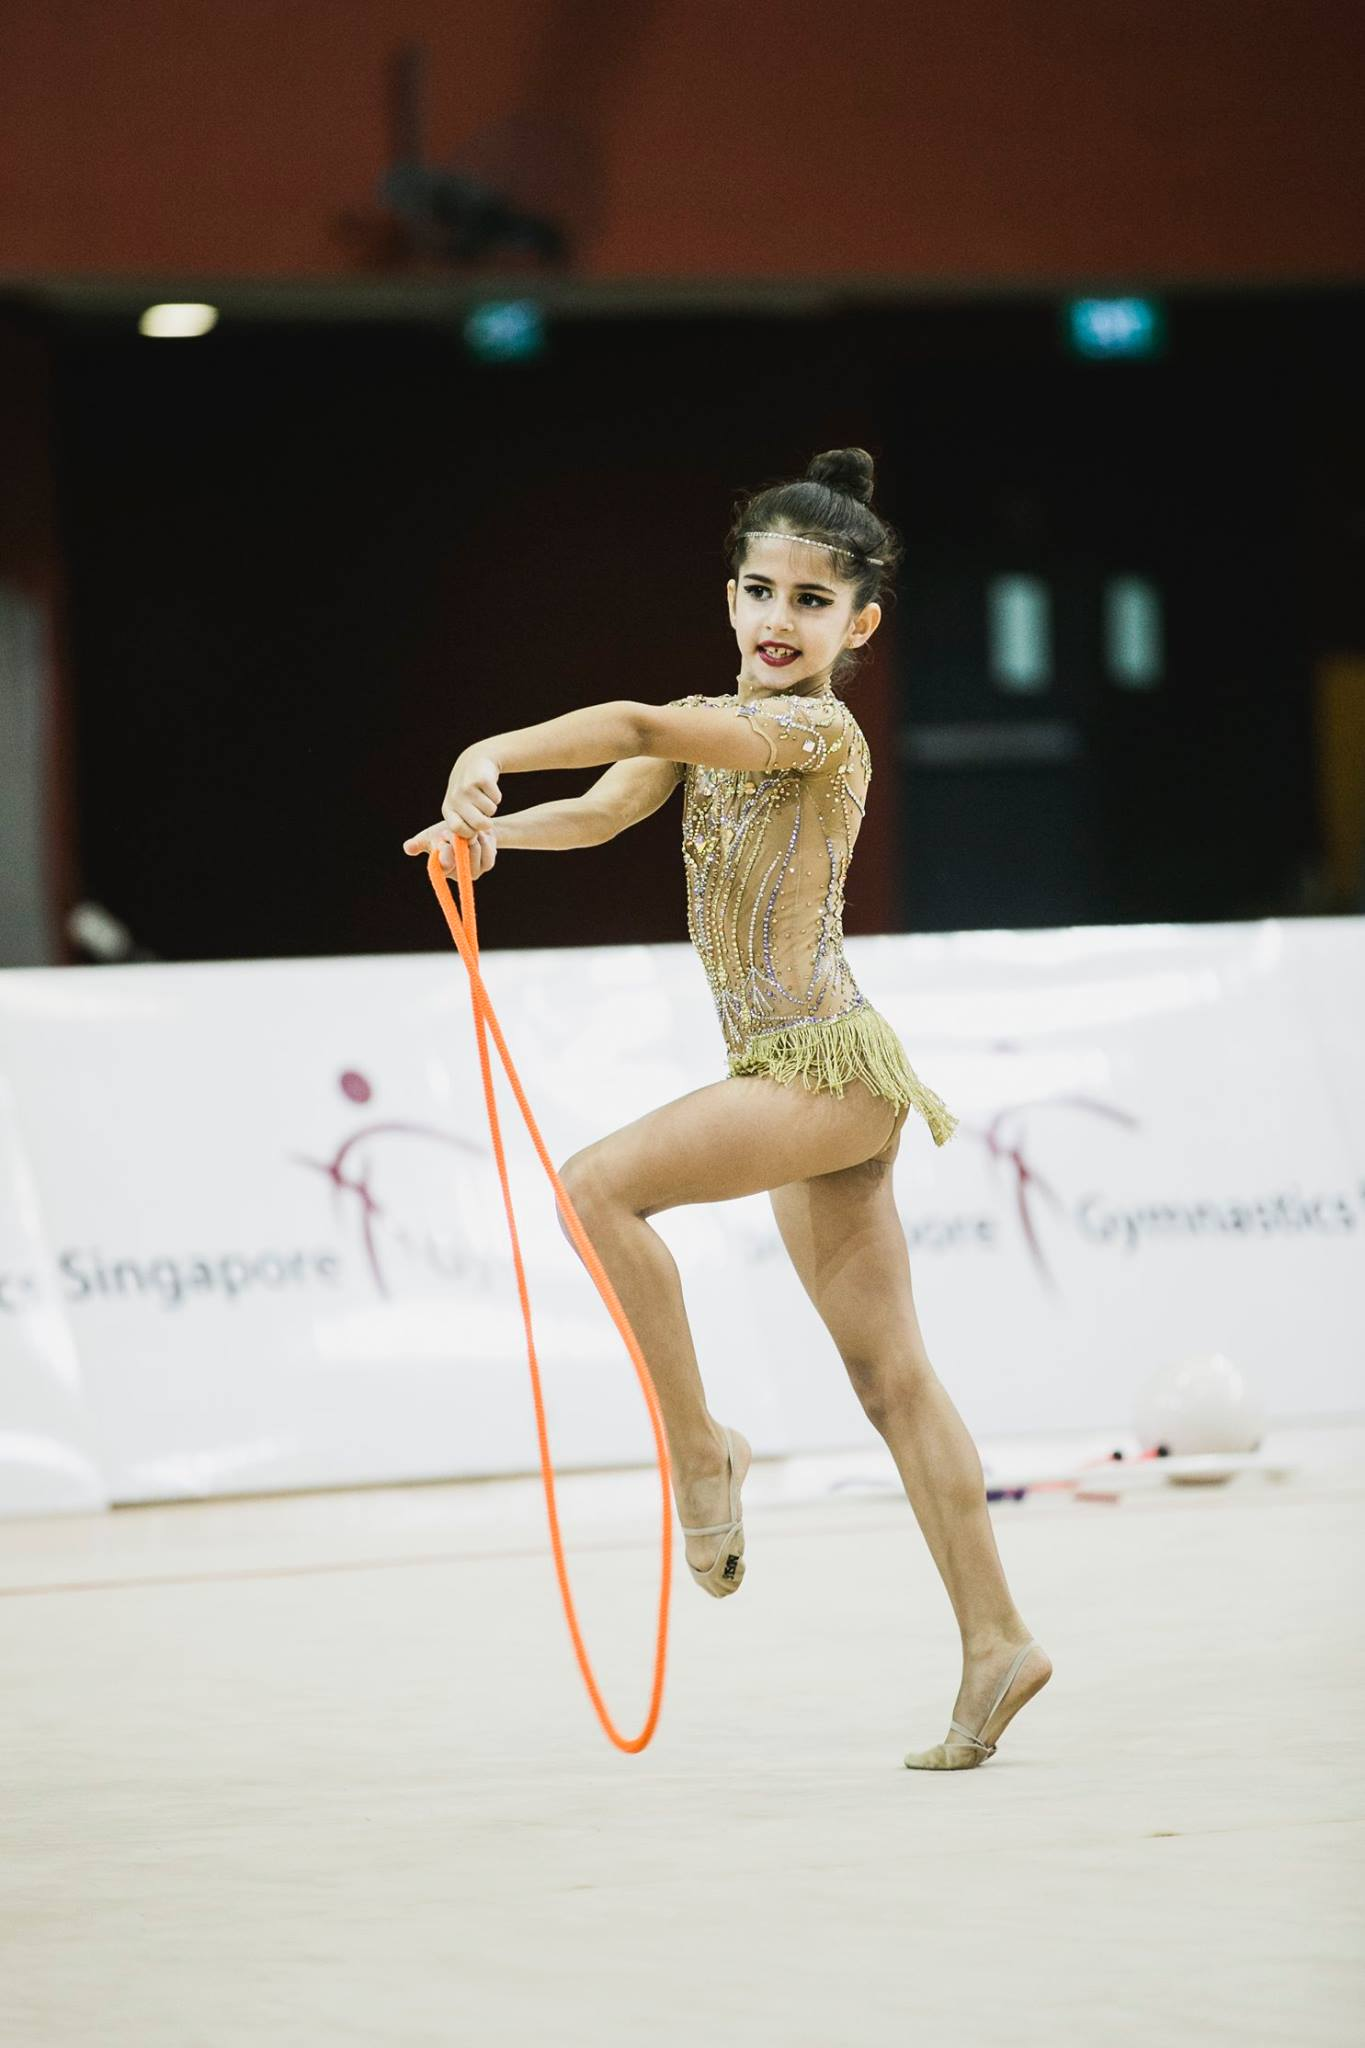 9th Singapore Gymnastics National Championships 2017 26